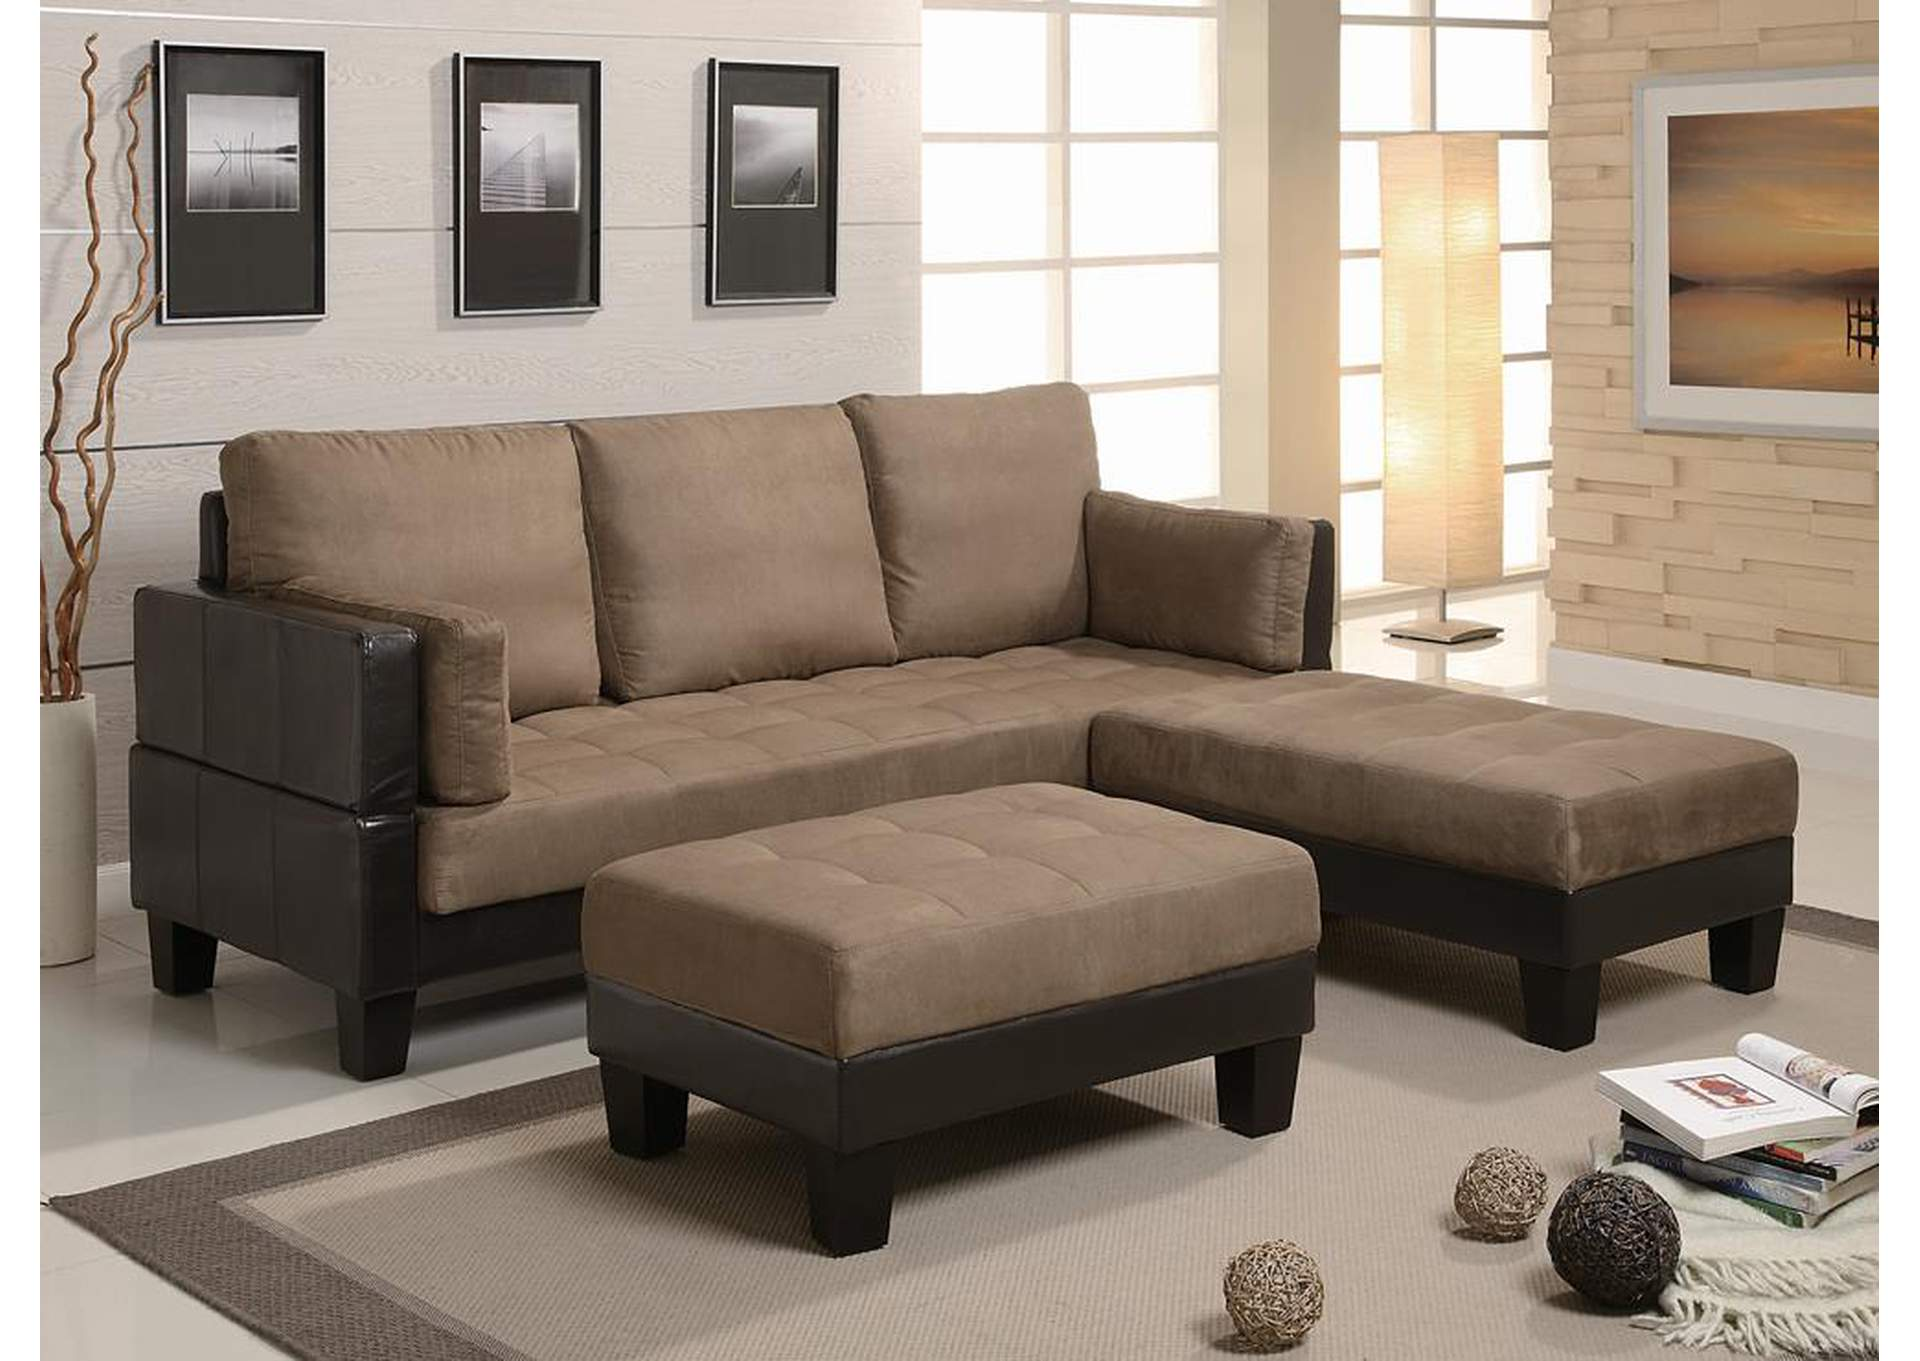 Ellesmere Tan Sofa Bed,Coaster Furniture